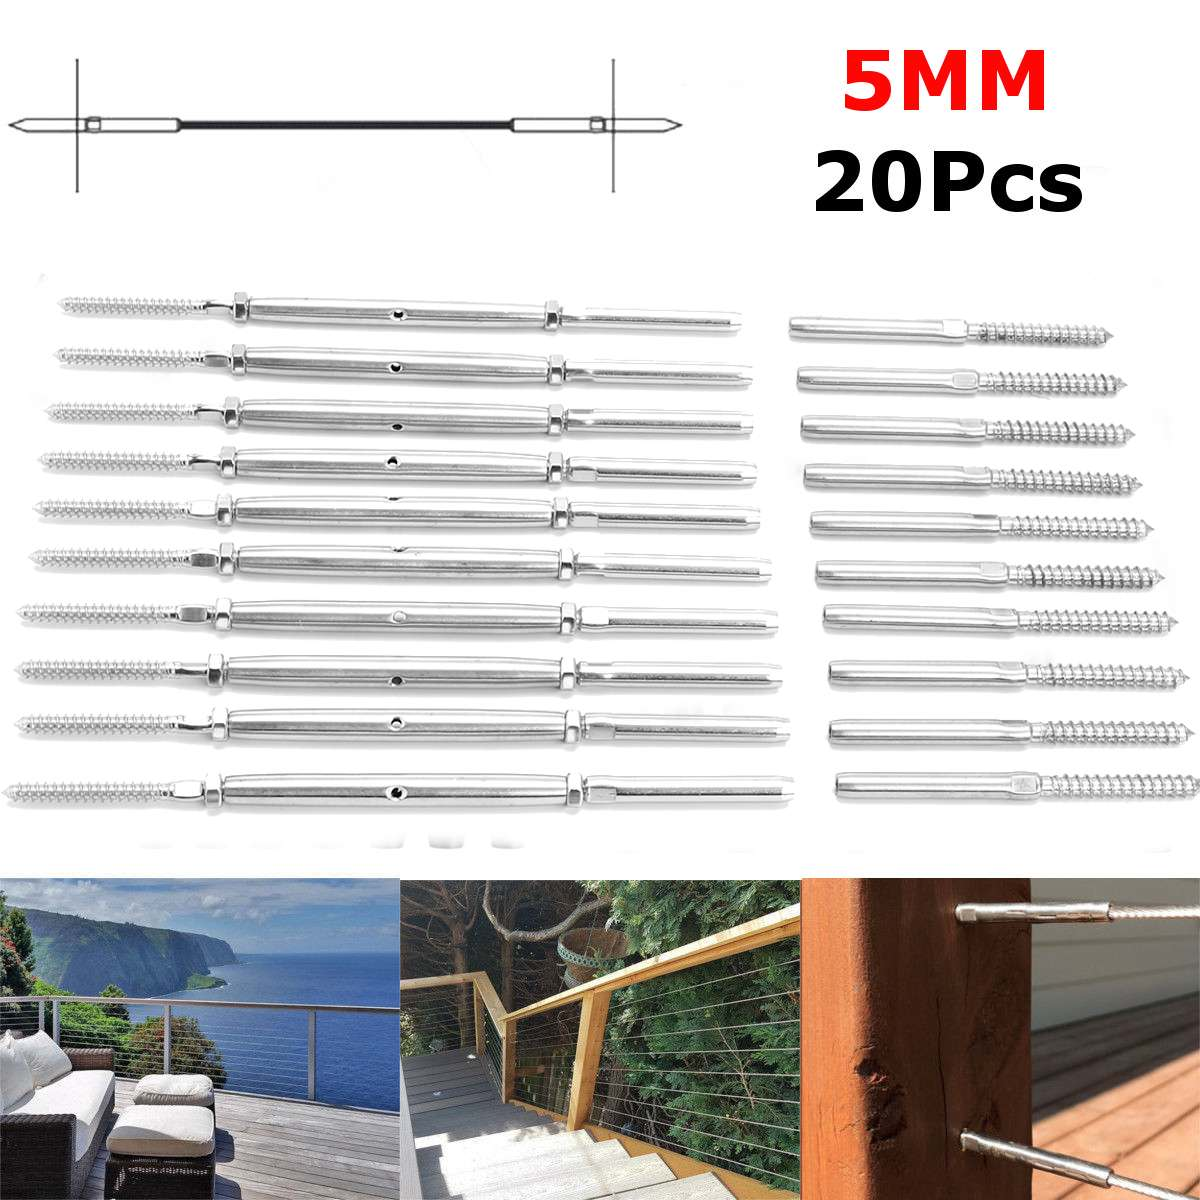 20Pcs/Set For 5mm Cable Silver Balustrade Cable Fixing Kit Screw Rope Balustrade Kit Stainless Steel Lag Screw Swage Terminal20Pcs/Set For 5mm Cable Silver Balustrade Cable Fixing Kit Screw Rope Balustrade Kit Stainless Steel Lag Screw Swage Terminal